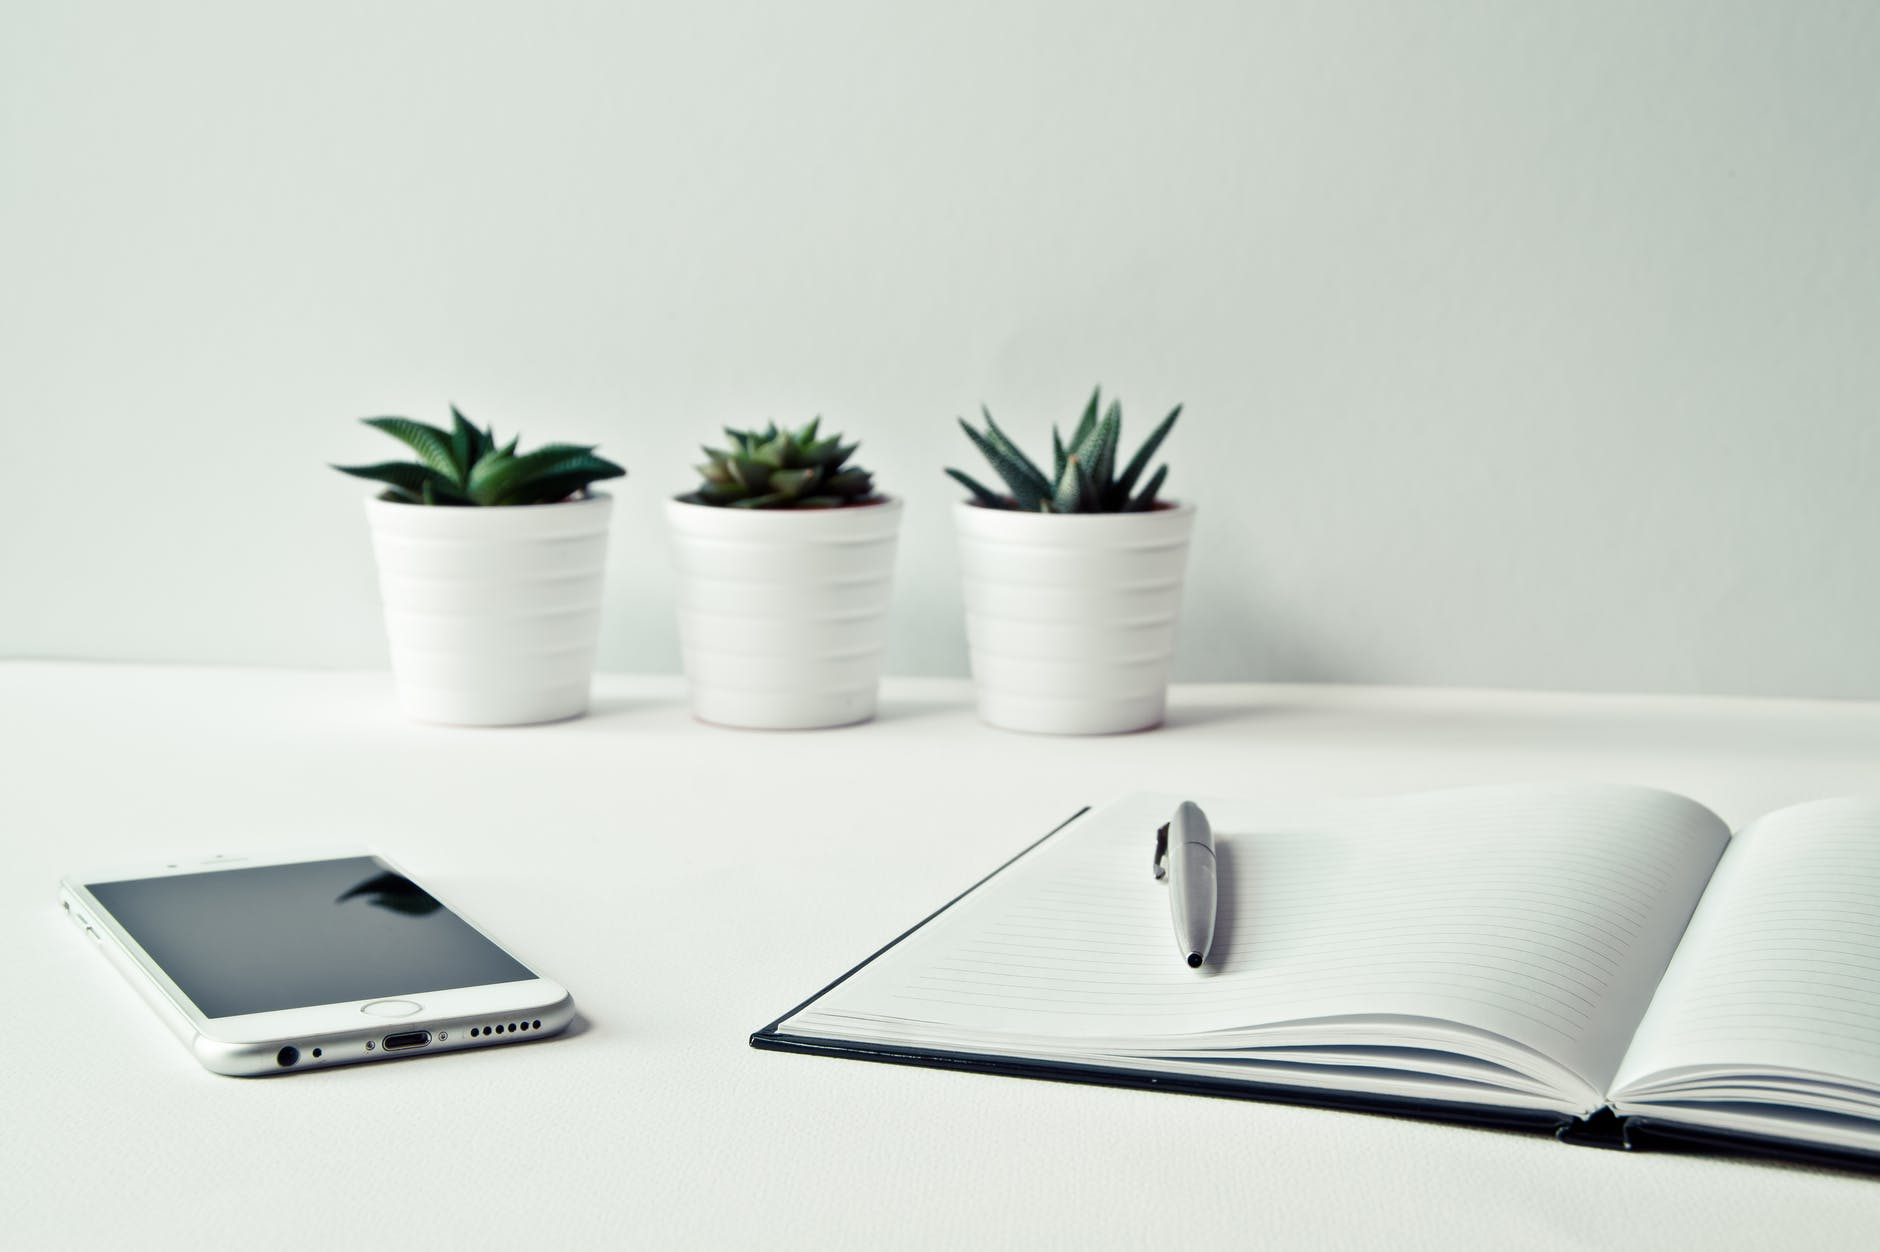 Sustainable Tech Alternatives - How Ethical is Your Tech